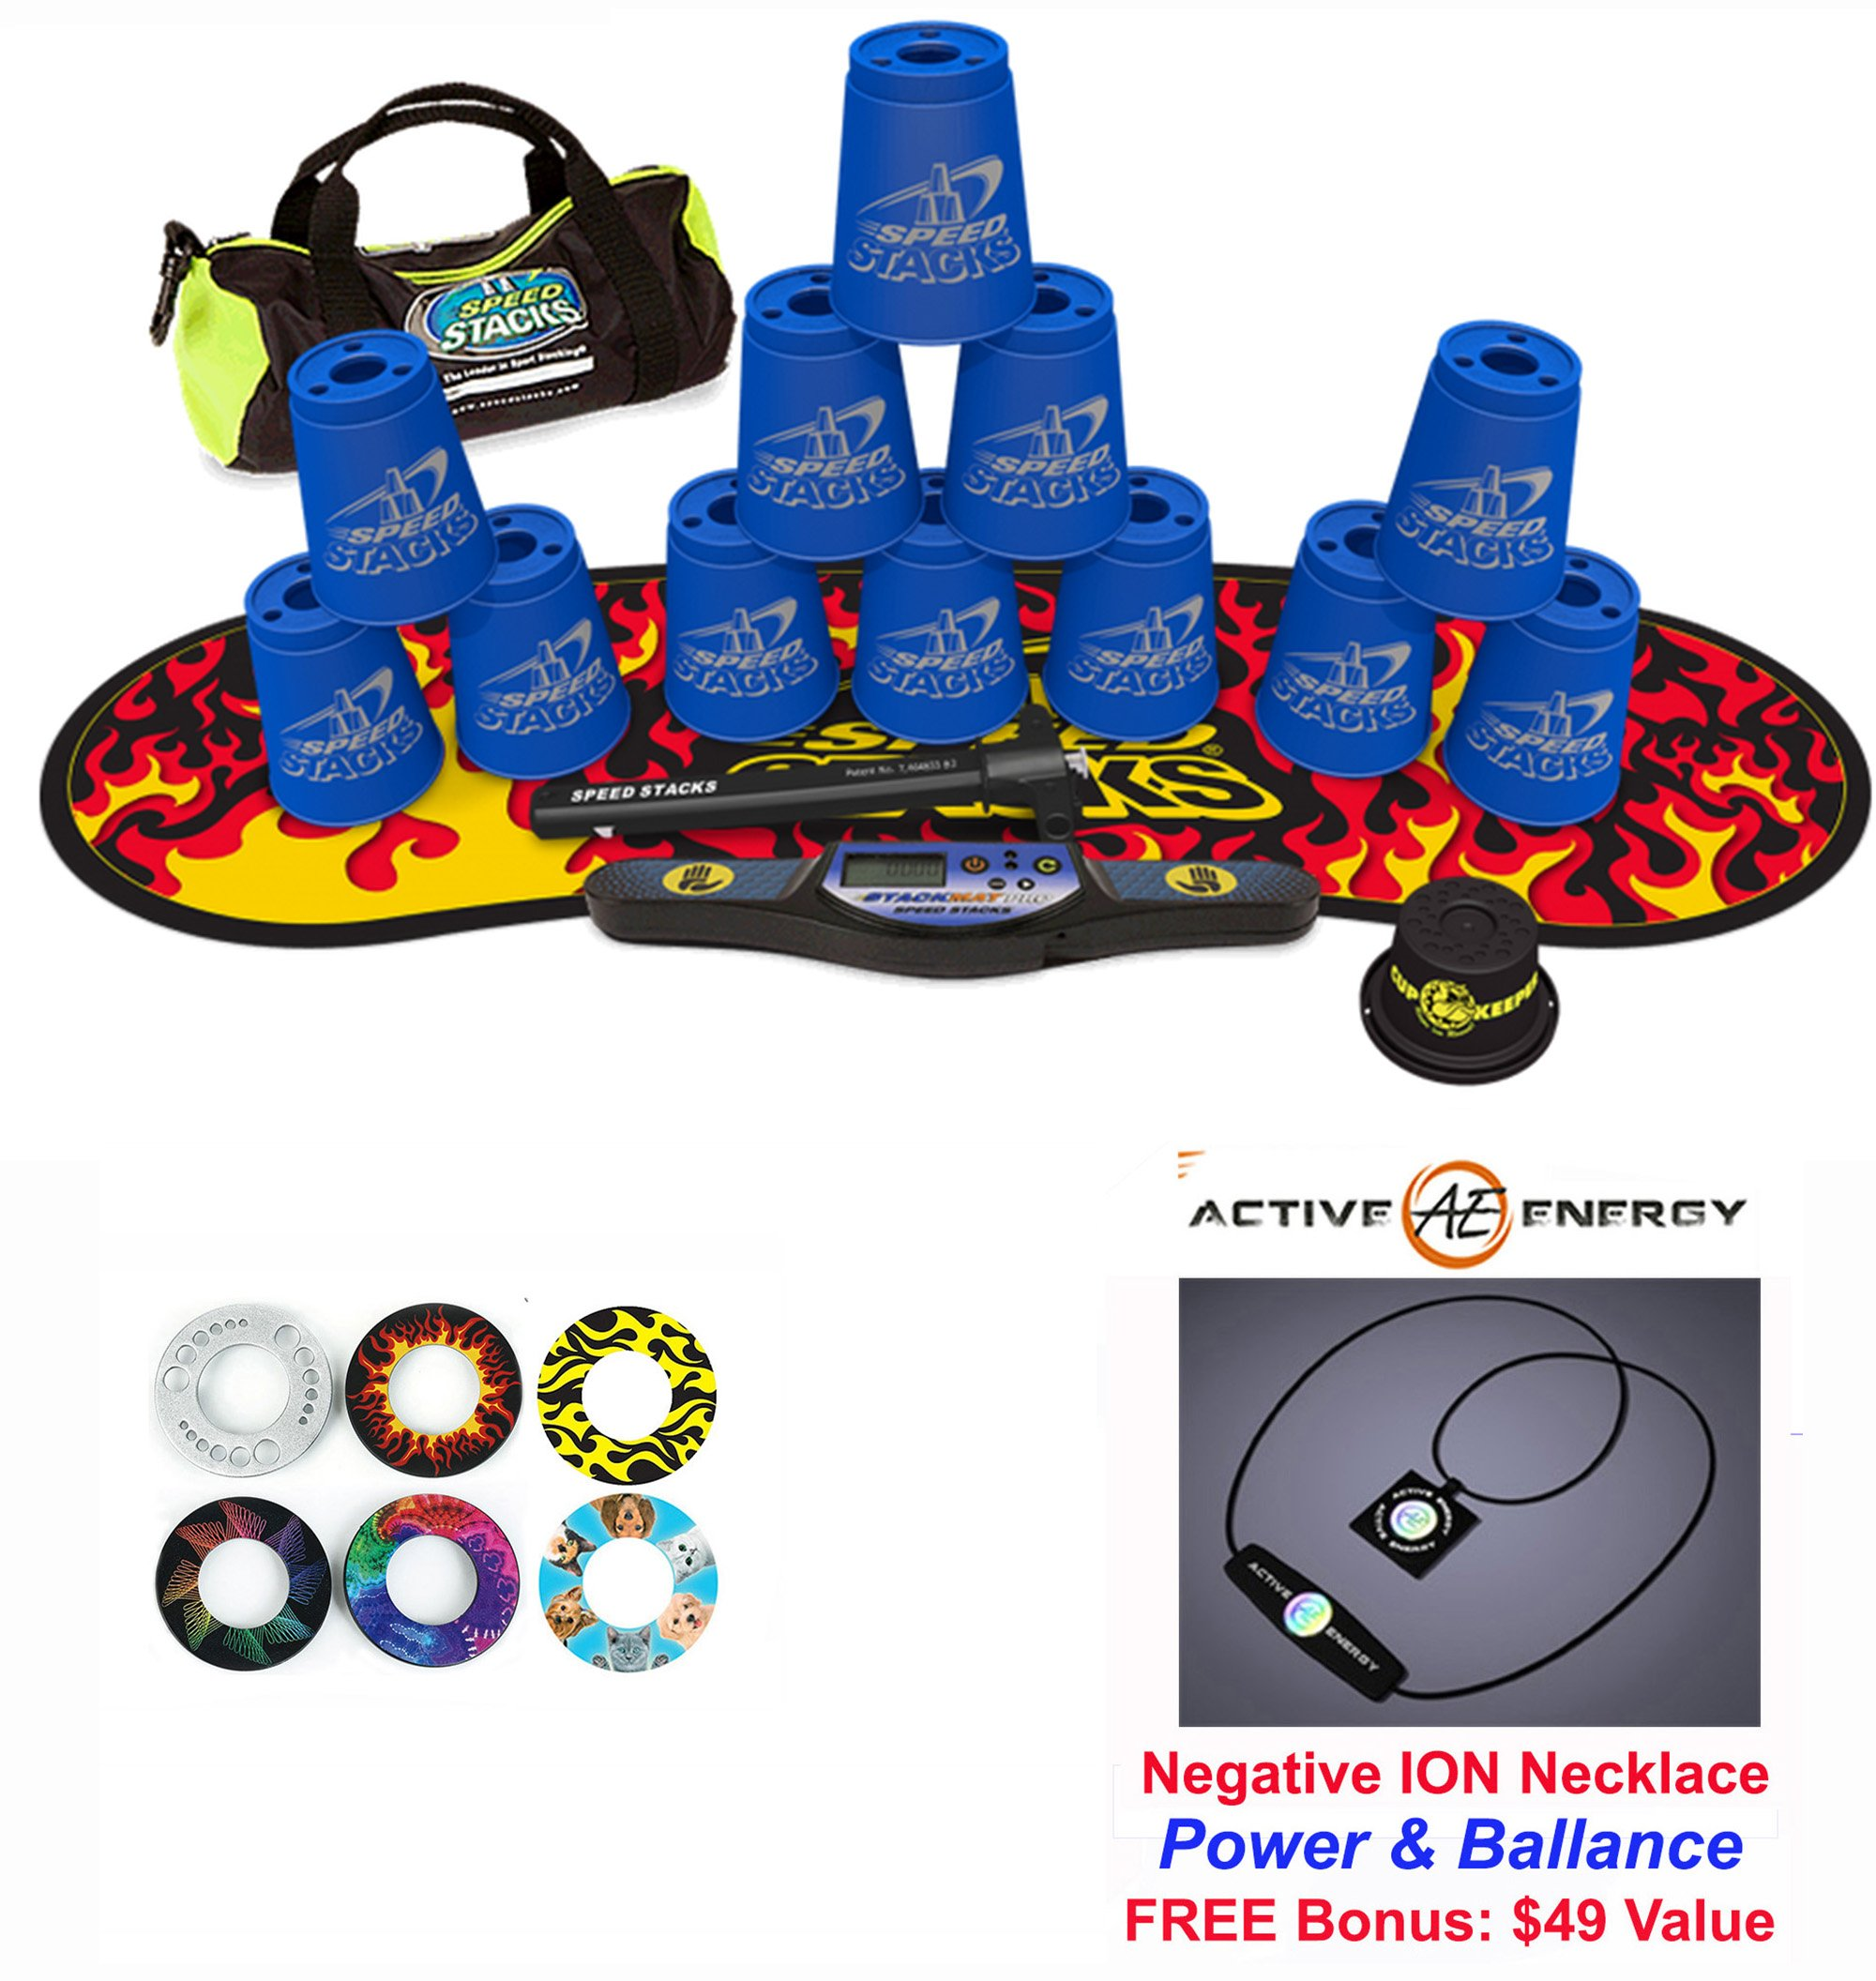 Speed Stacks Custom Combo Set - The Works: 12 BLUE 4'' Cups, Cup Keeper, Quick Release Stem, Pro Timer, Gen 3 Premium Black Flame Mat, 6 Snap Tops, Gear Bag + FREE: Active Energy Power Necklace $49